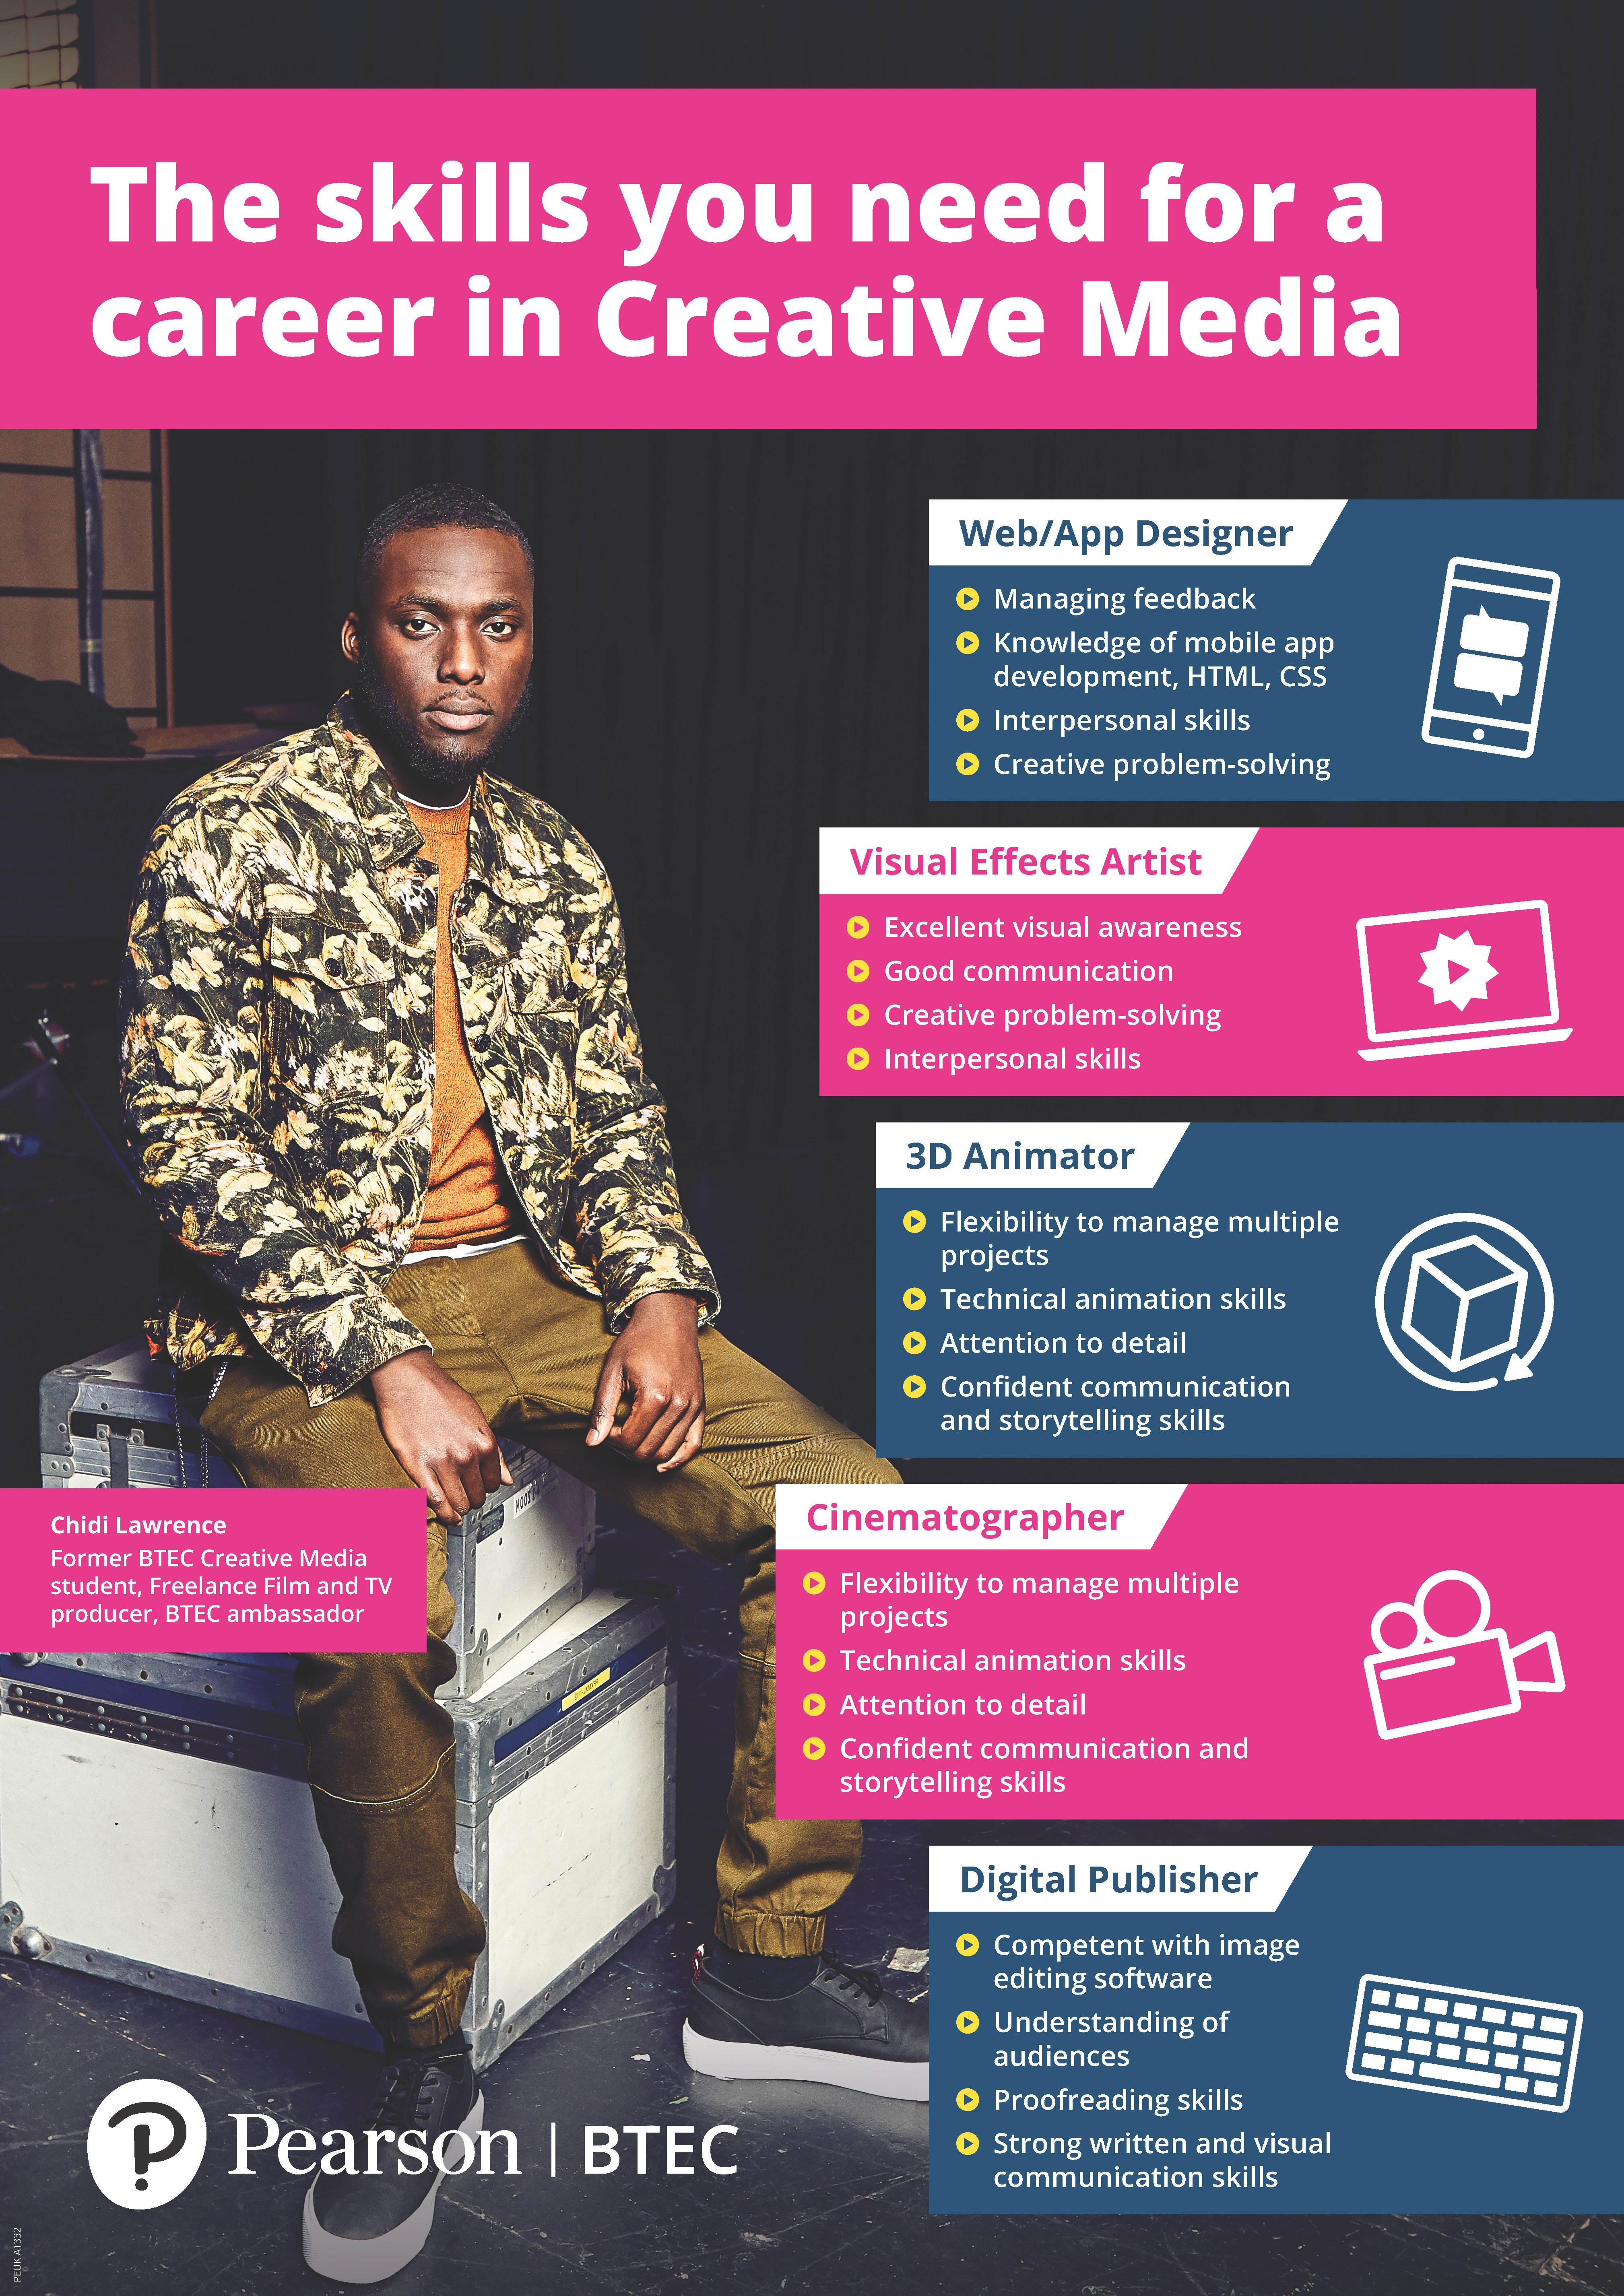 The skills you need for a career in Creative Media